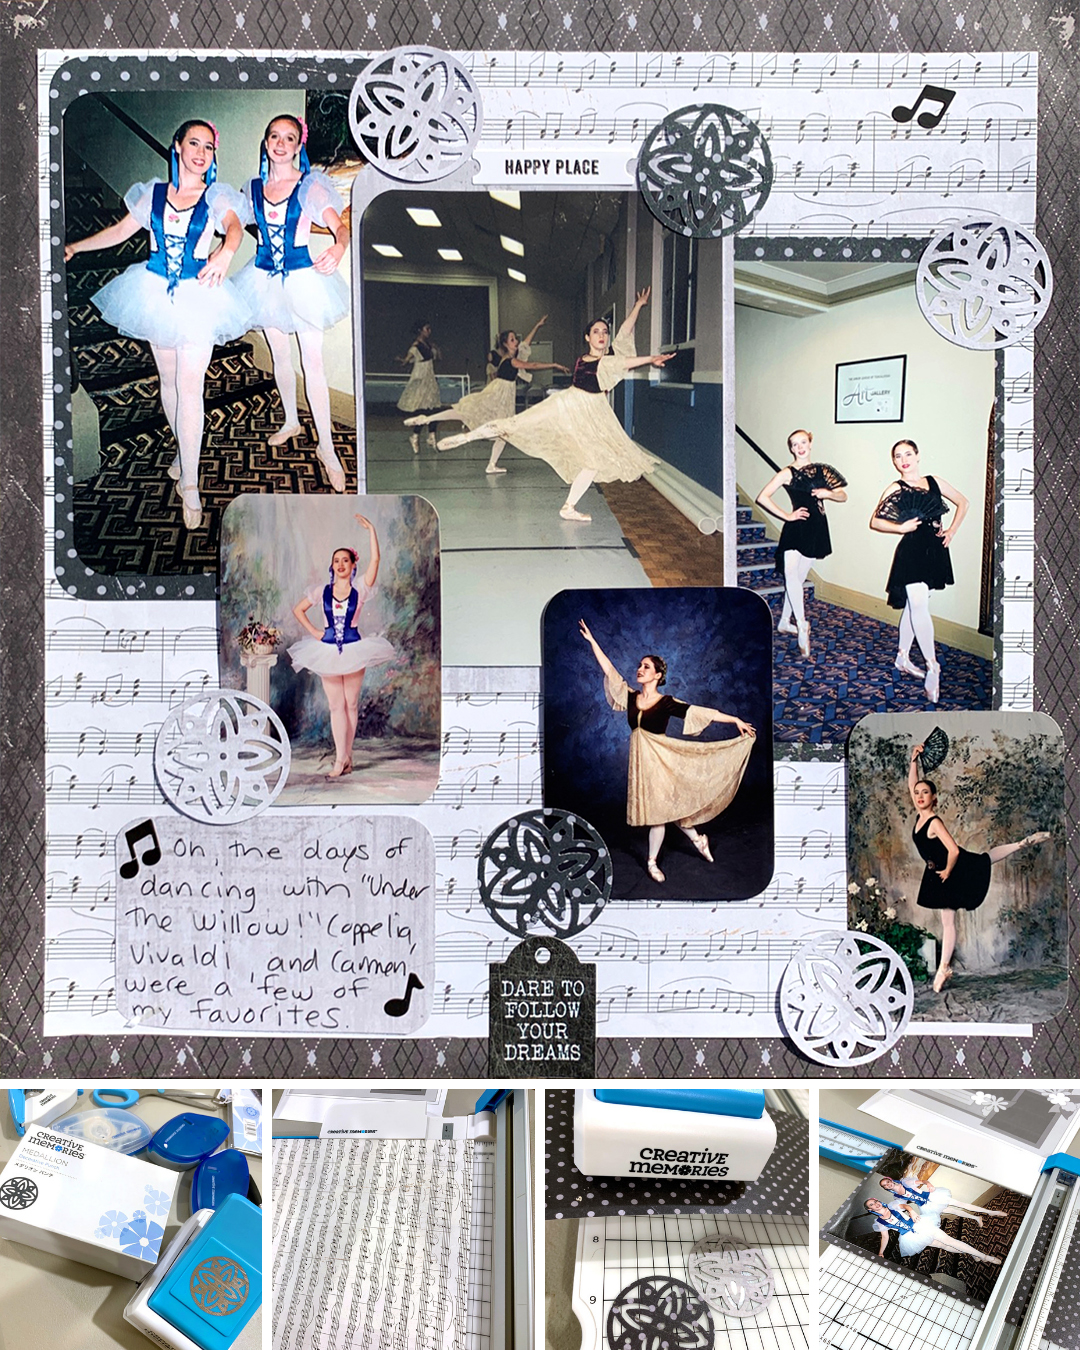 Virtual-Crop-Memoirs-Memories-Layout-Final-Creative-Memories